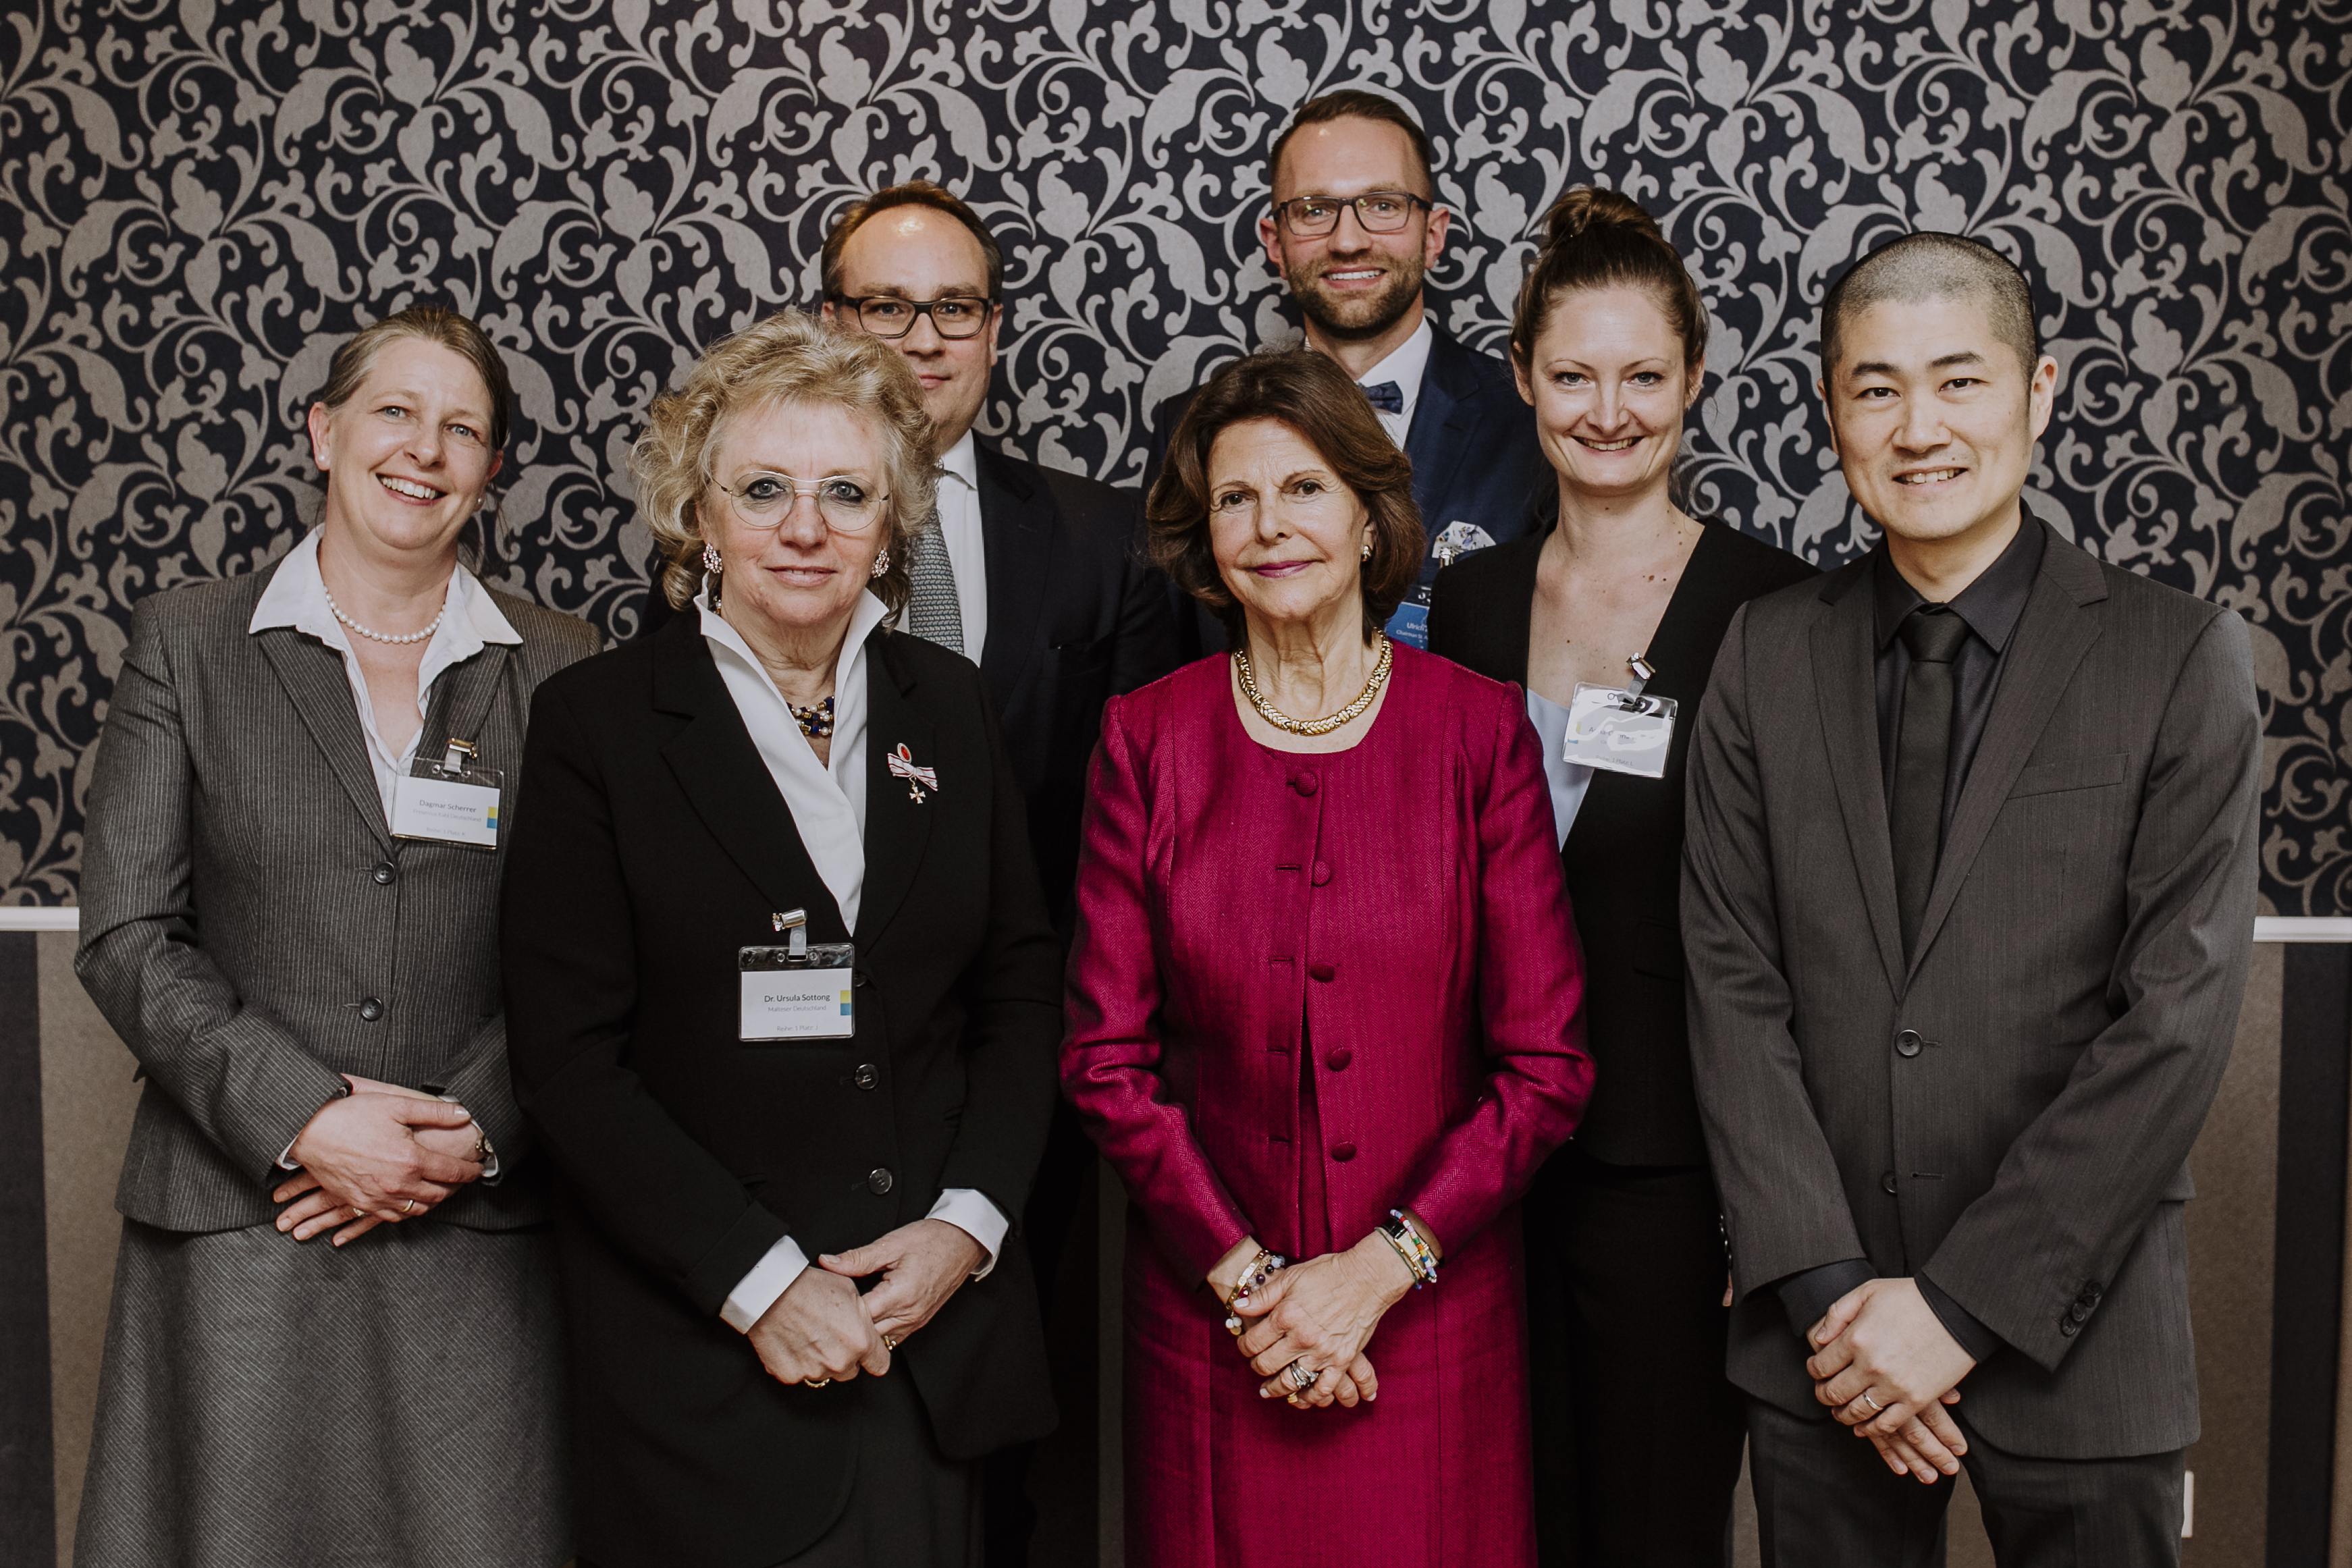 Jury Queen Silvia Nursing Award Deutschland.